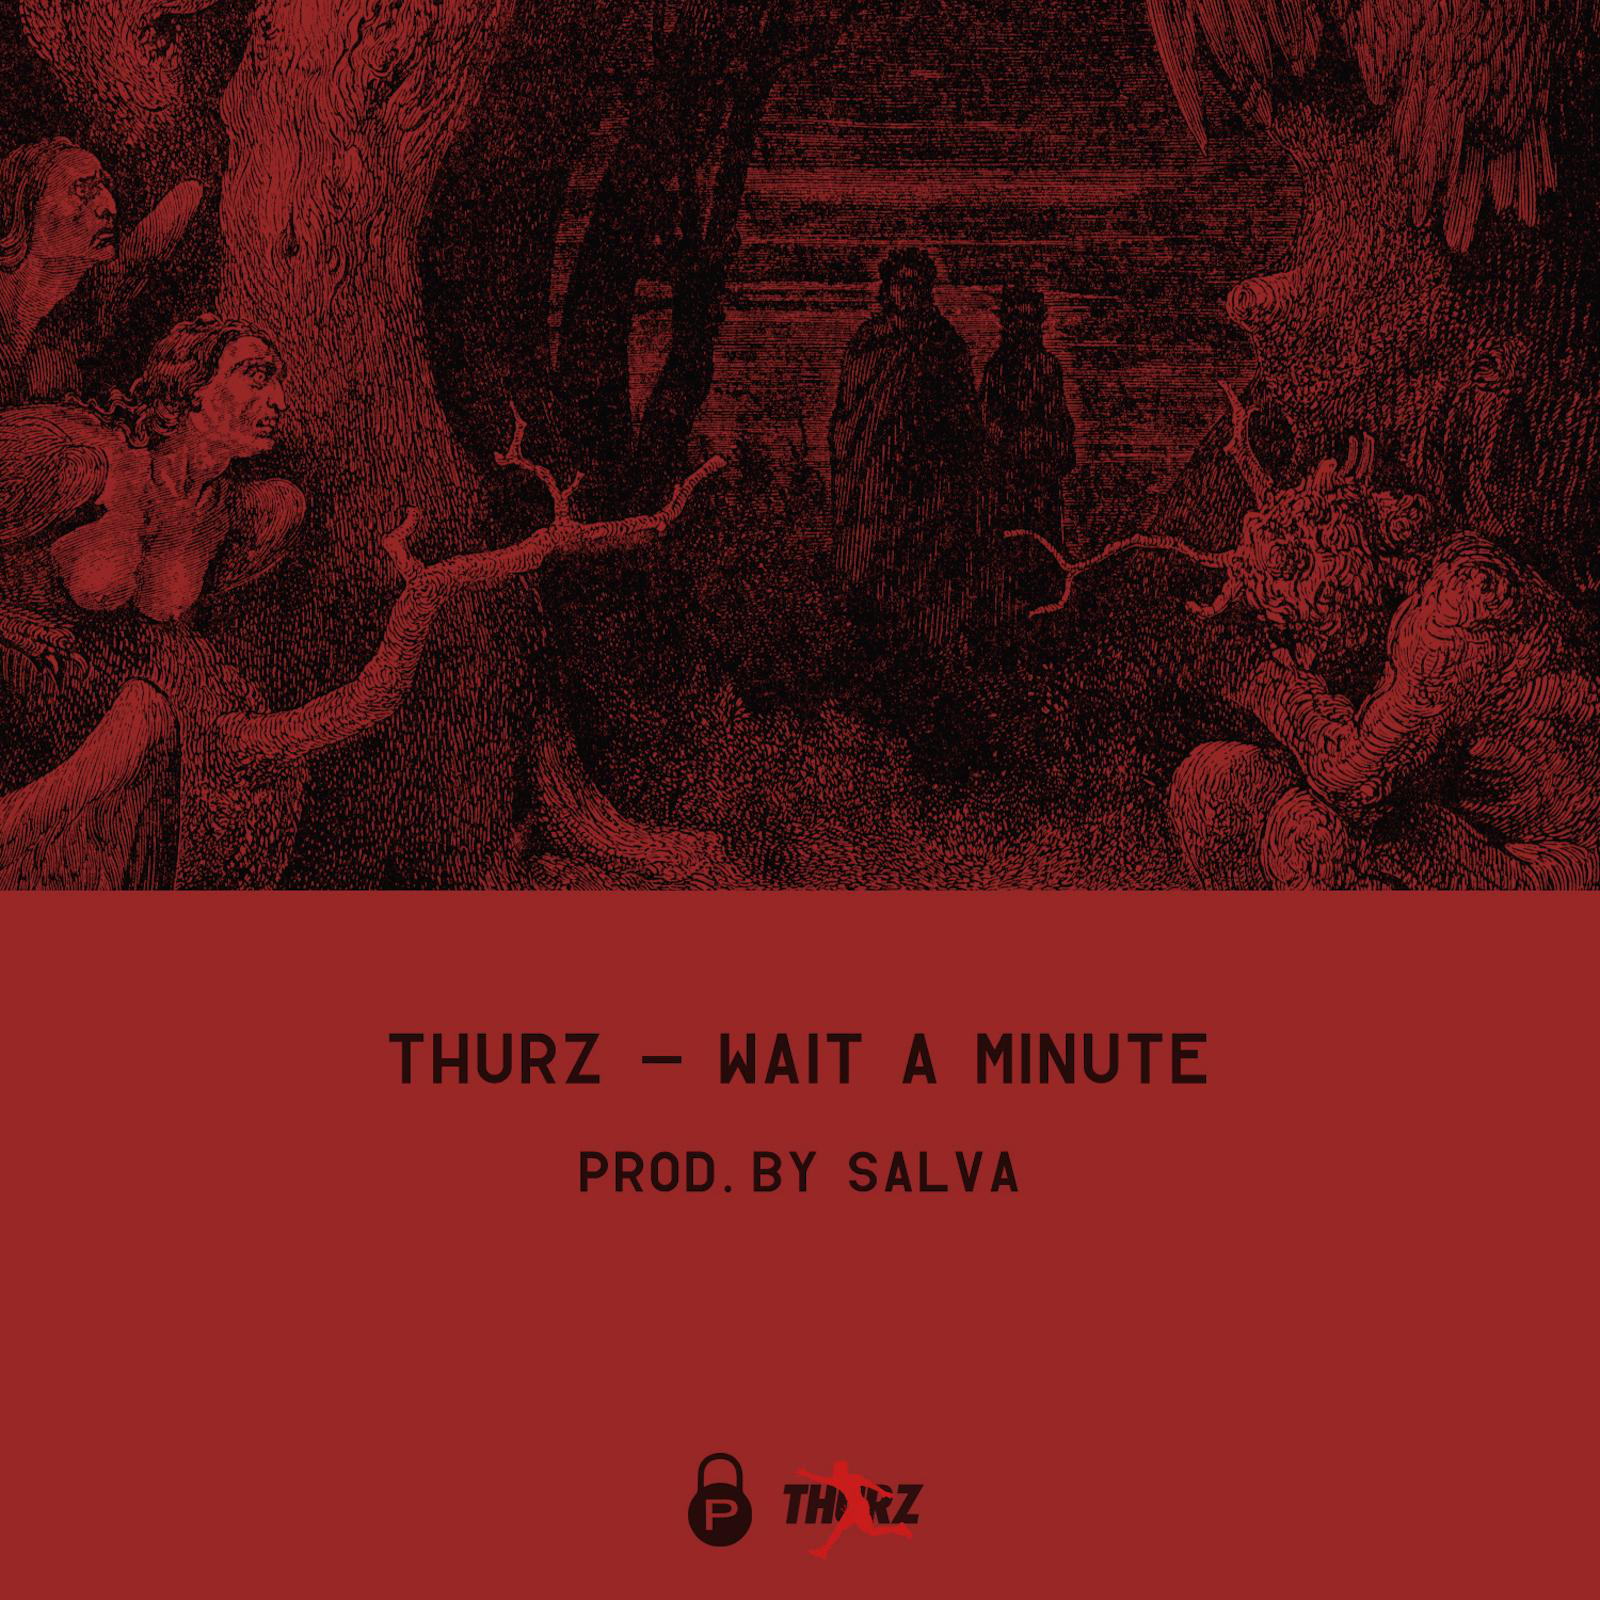 Thurz - Wait a Minute - Single Cover